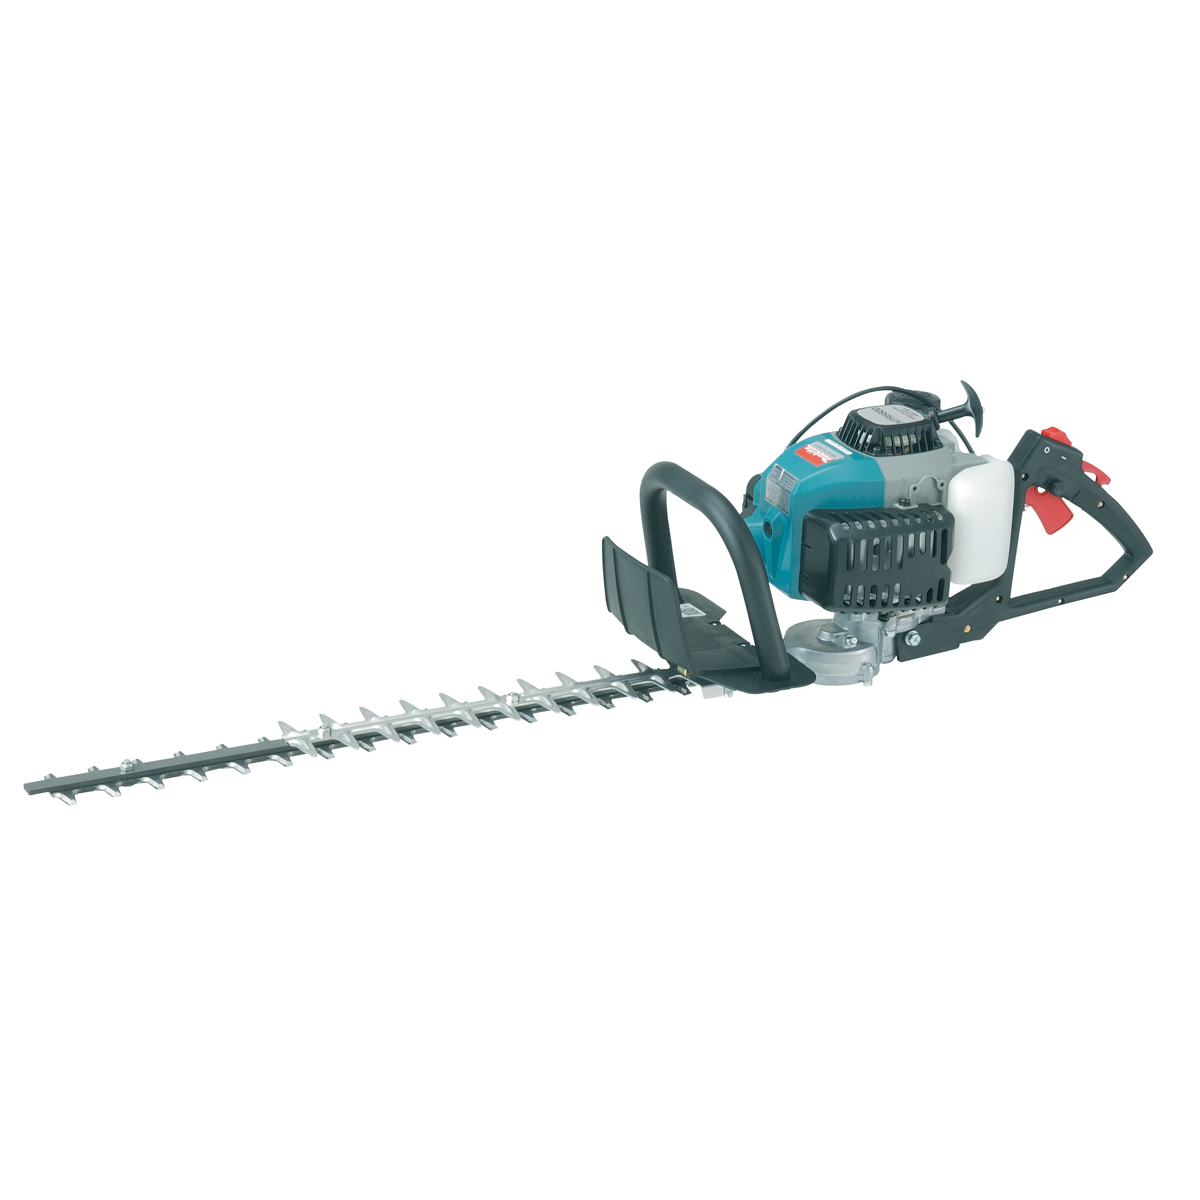 3 Point Hedge Trimmer : Makita petrol hedge trimmer buy online industrybuying